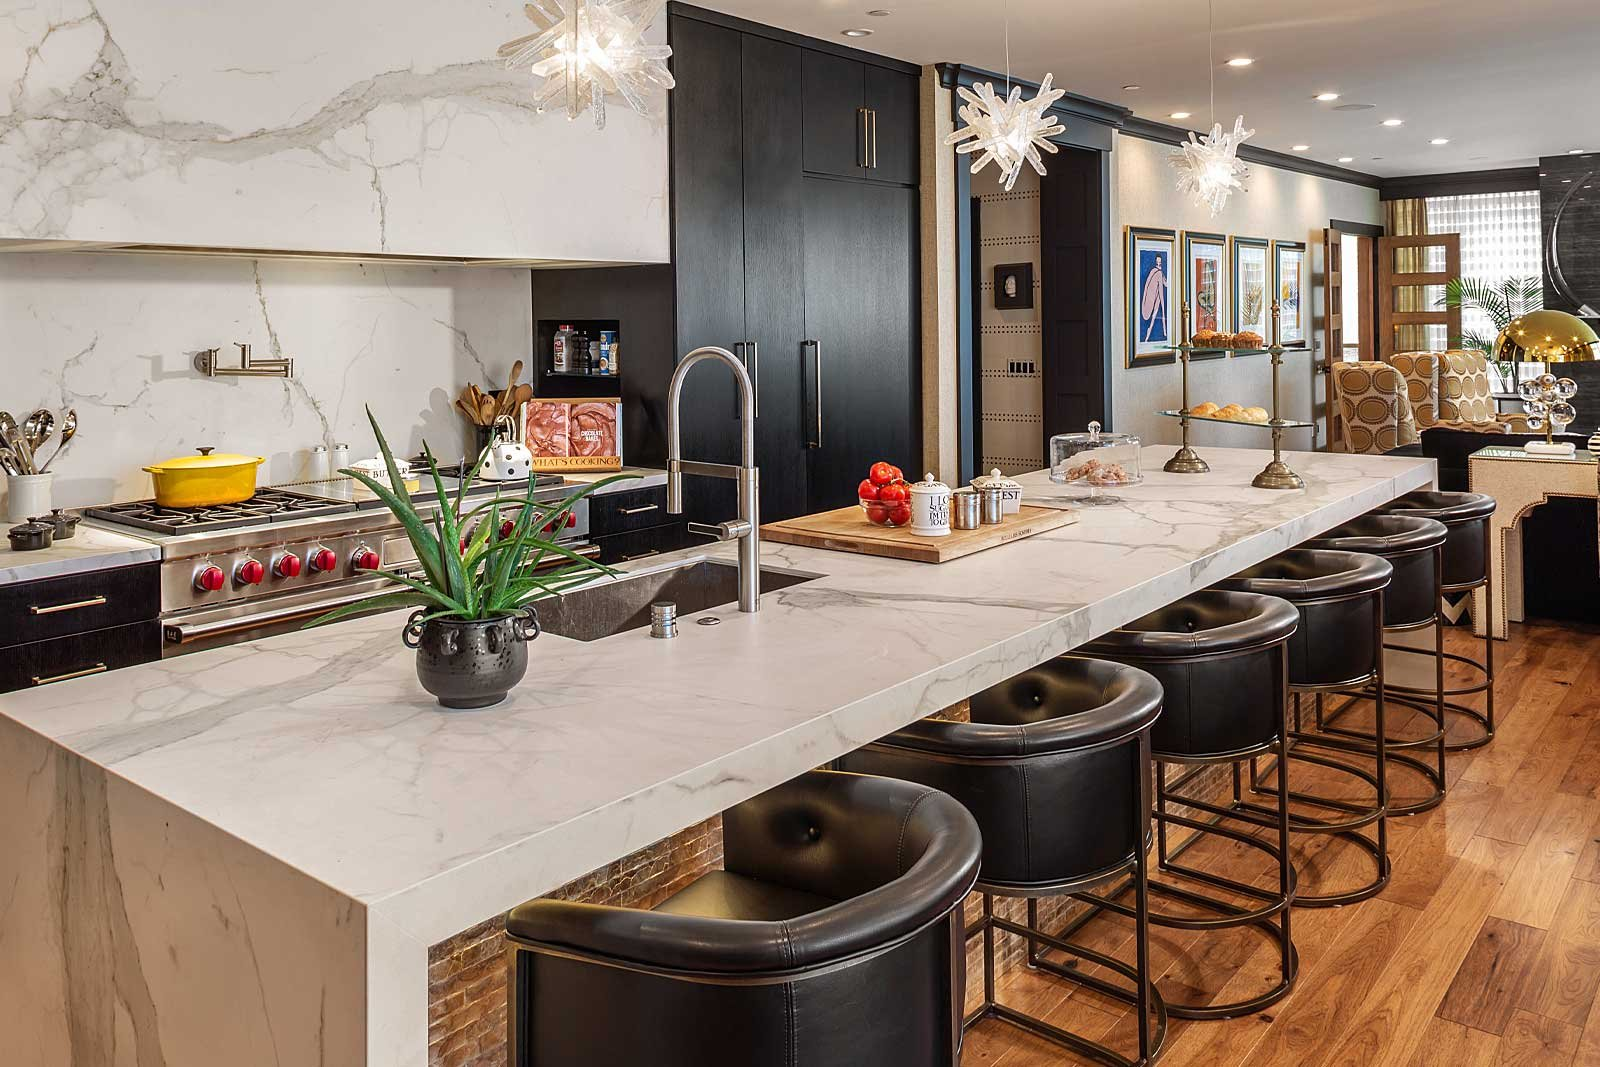 Modern kitchen by one of the top Milwaukee interior designers, Andrea Farr